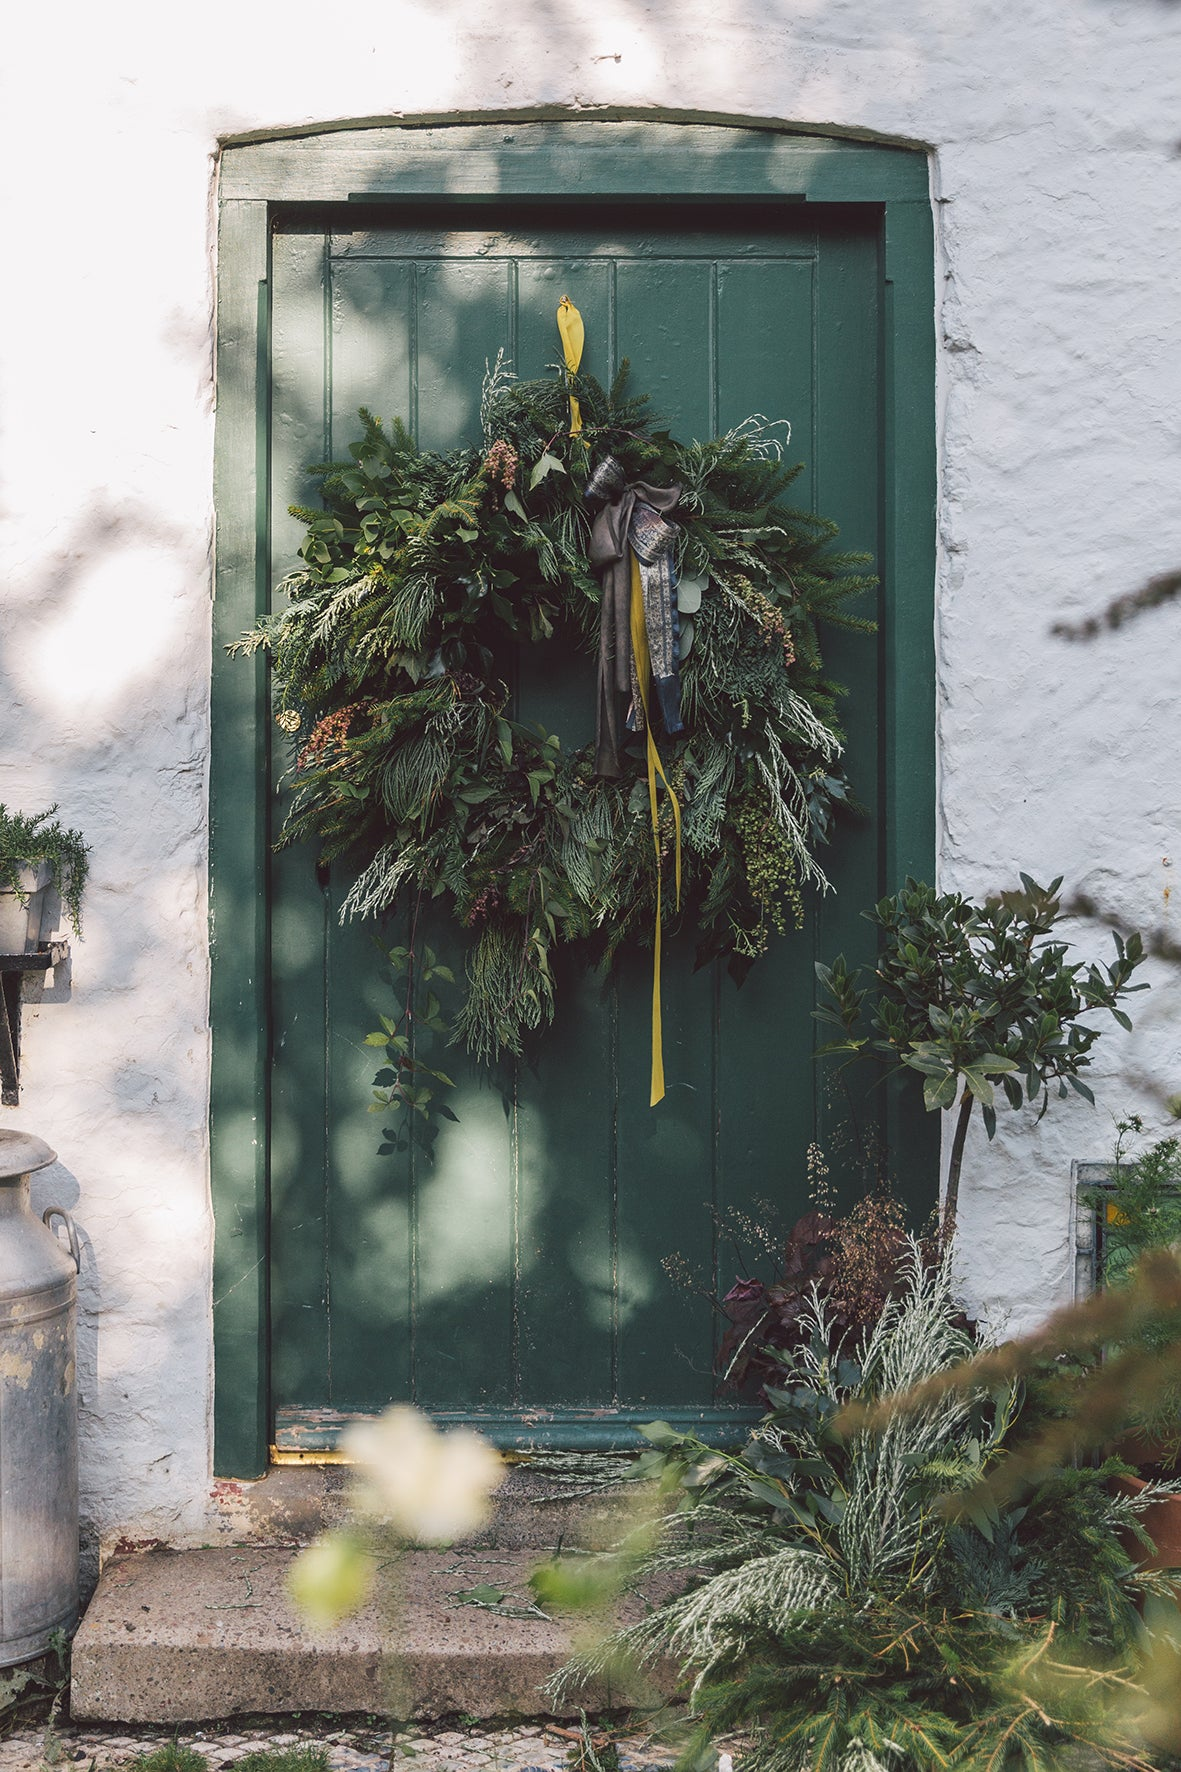 LUXURY FOLIAGE WREATH WORKSHOP - SATURDAY 7TH DECEMBER 2019 - 2pm - 4.30pm